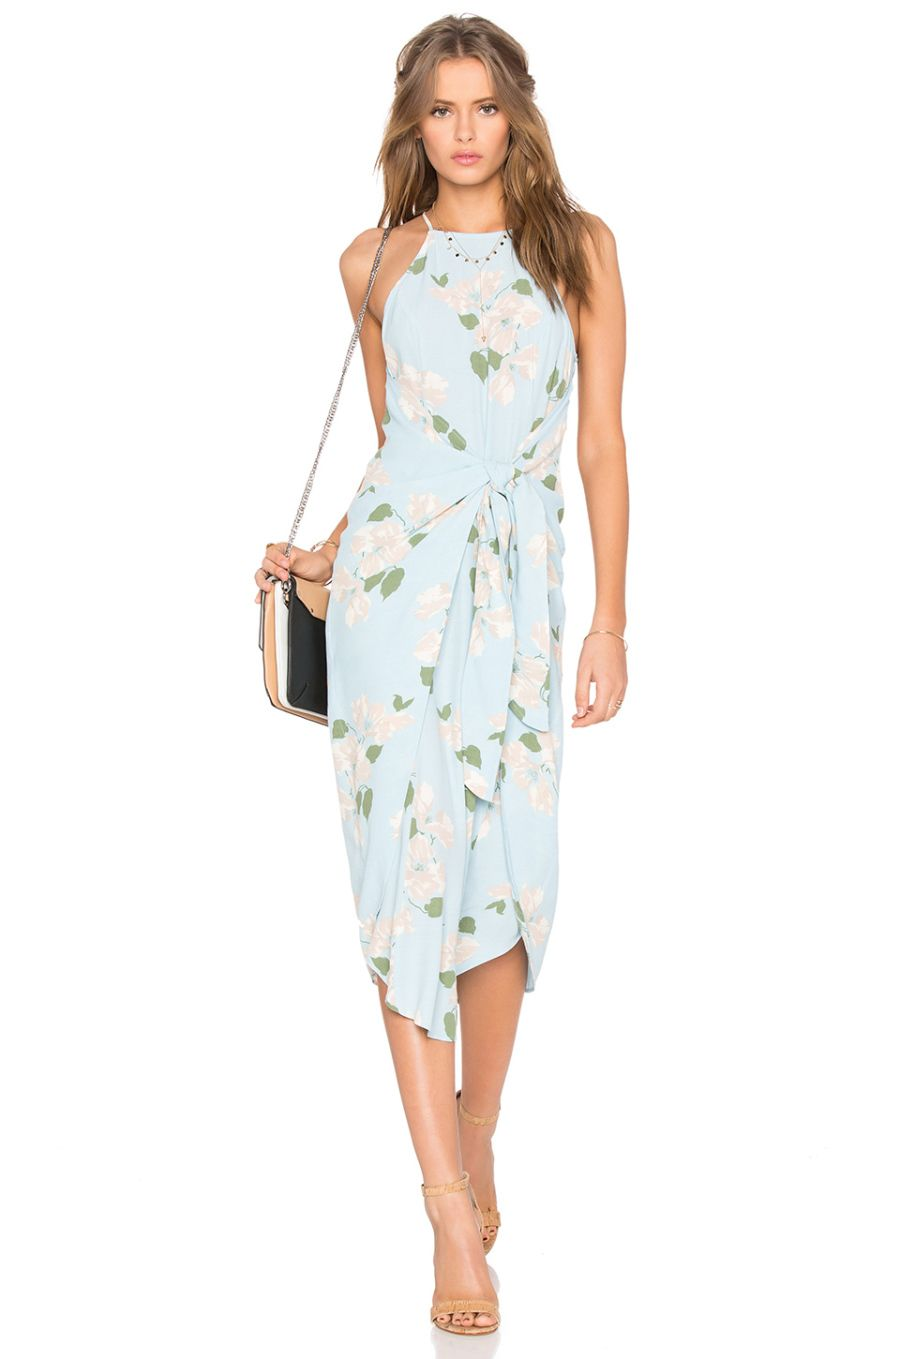 Going To A Summer Wedding Here S The Outfit Inspiration You Need Wedding Guest Dress Summer Guest Attire Beach Wedding Guest Dress